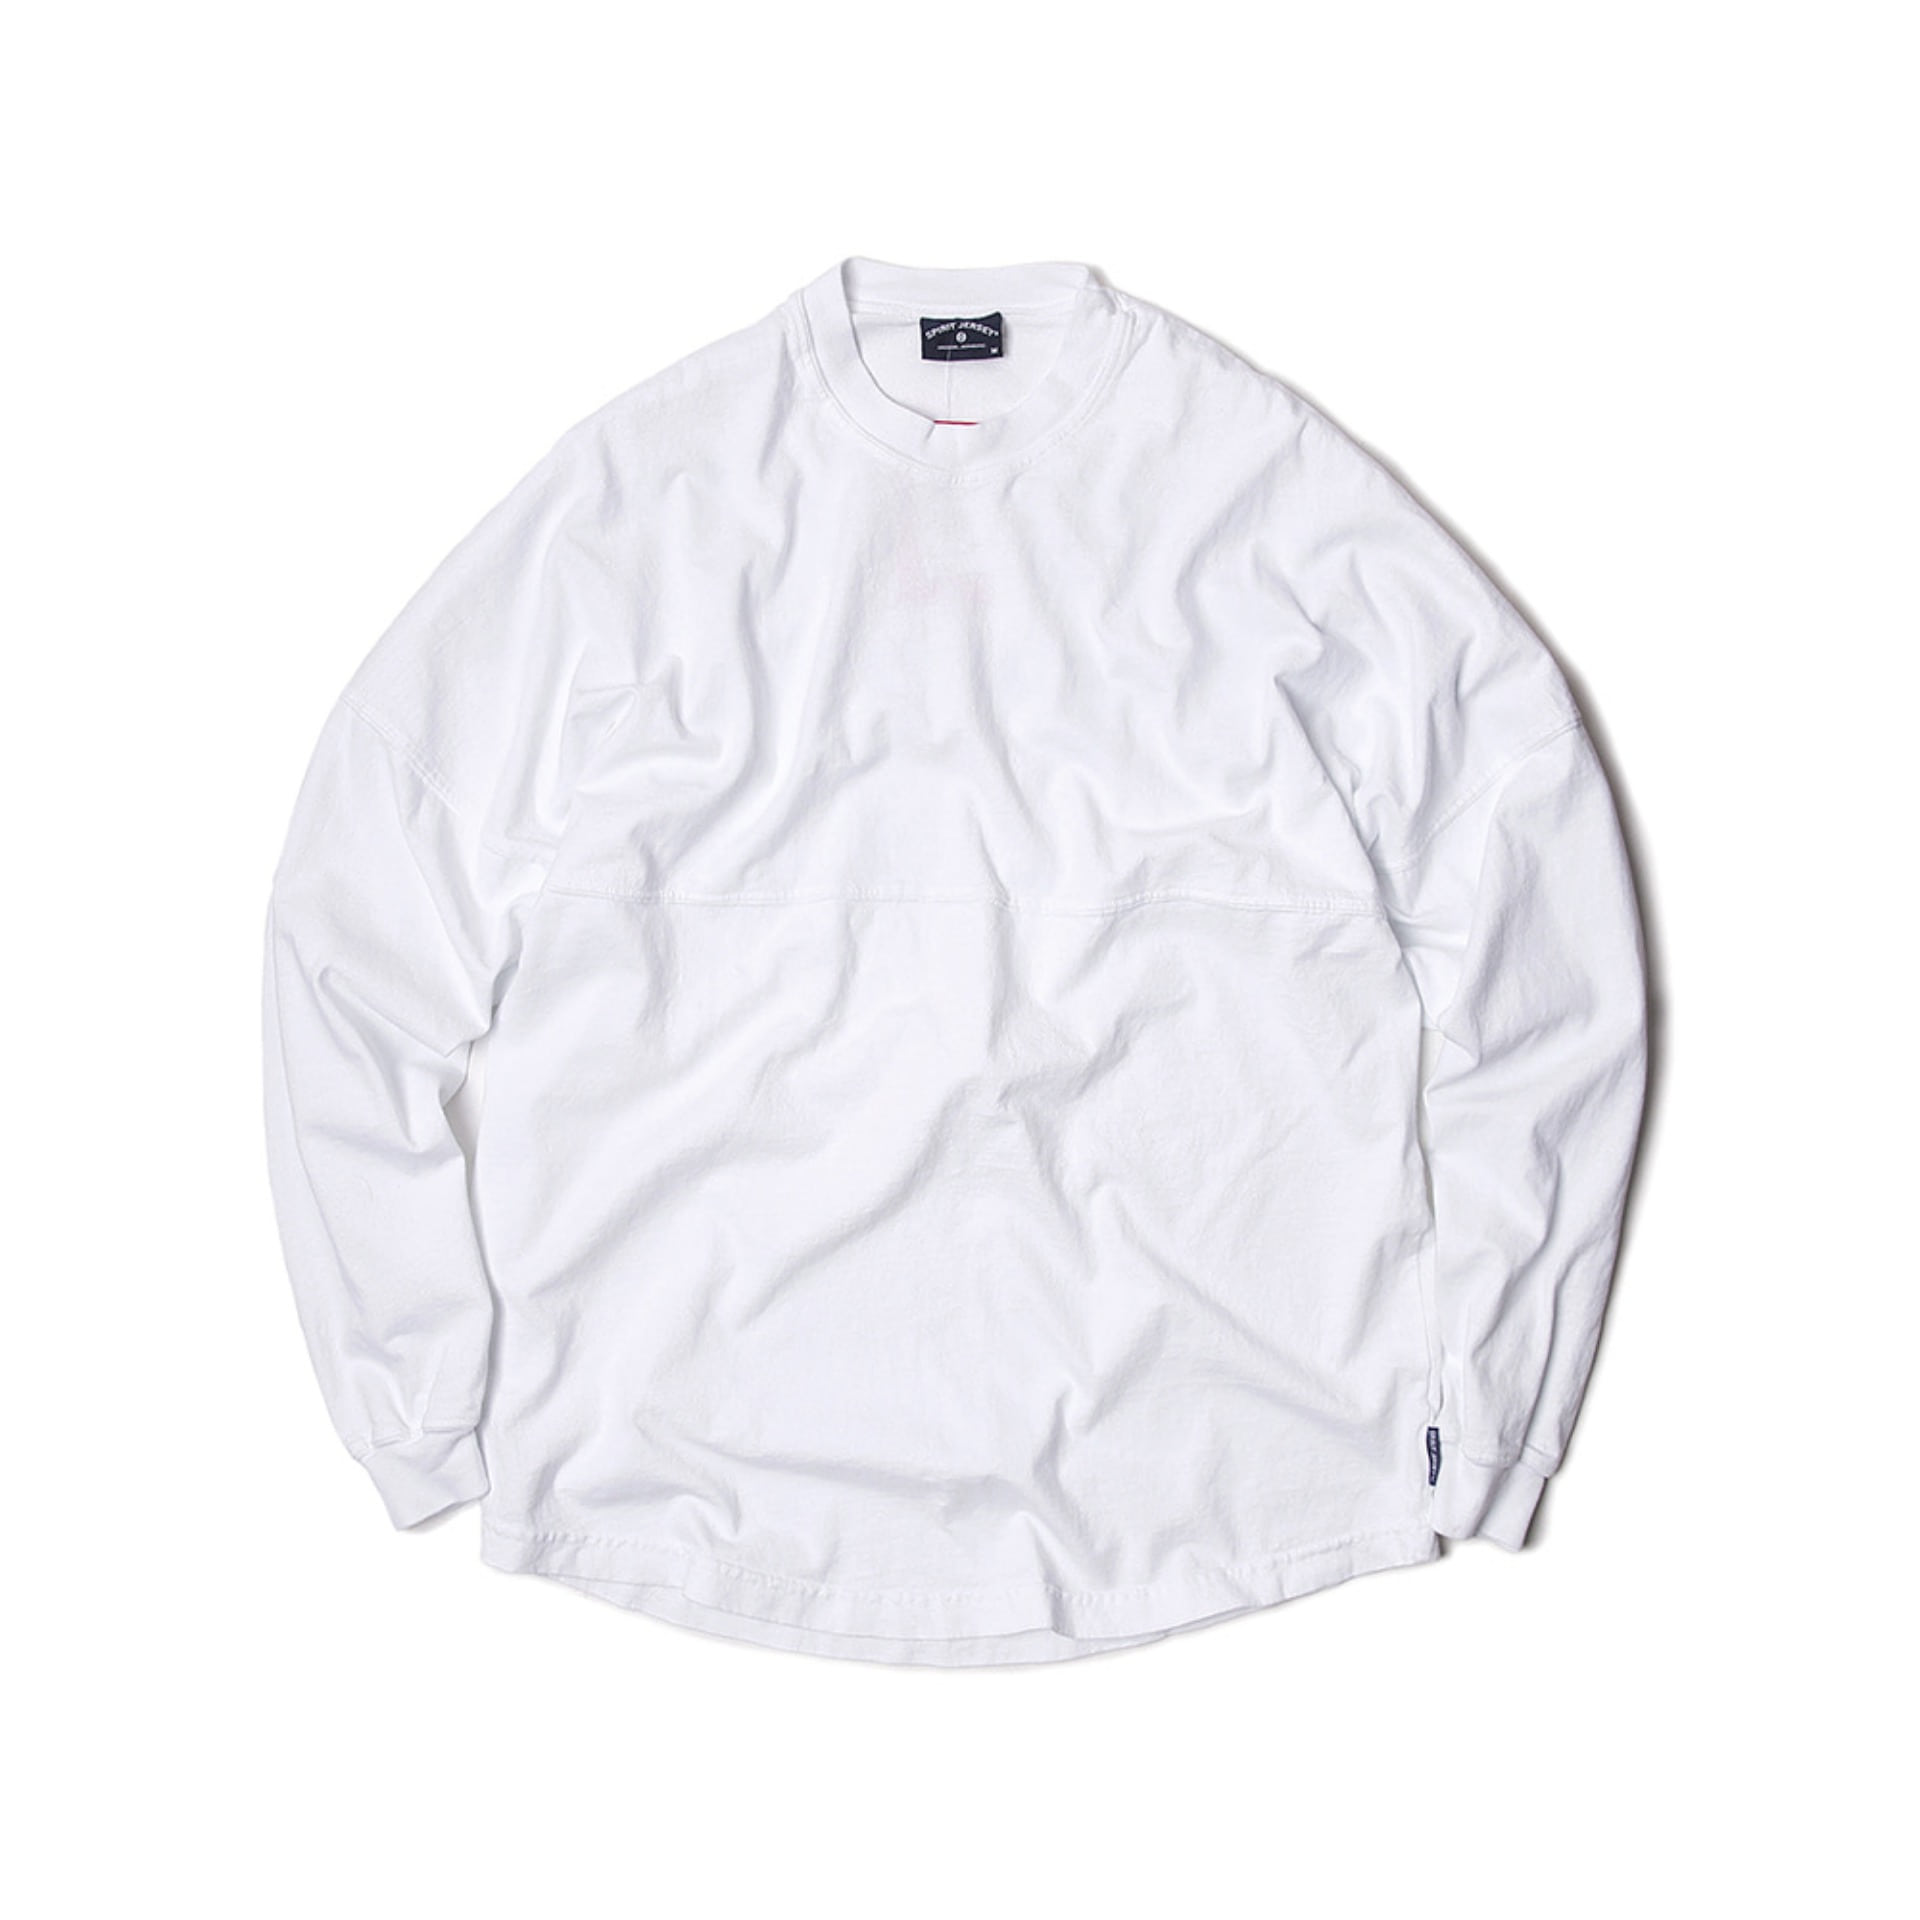 """New York"" Spirit Jersey®(White)"